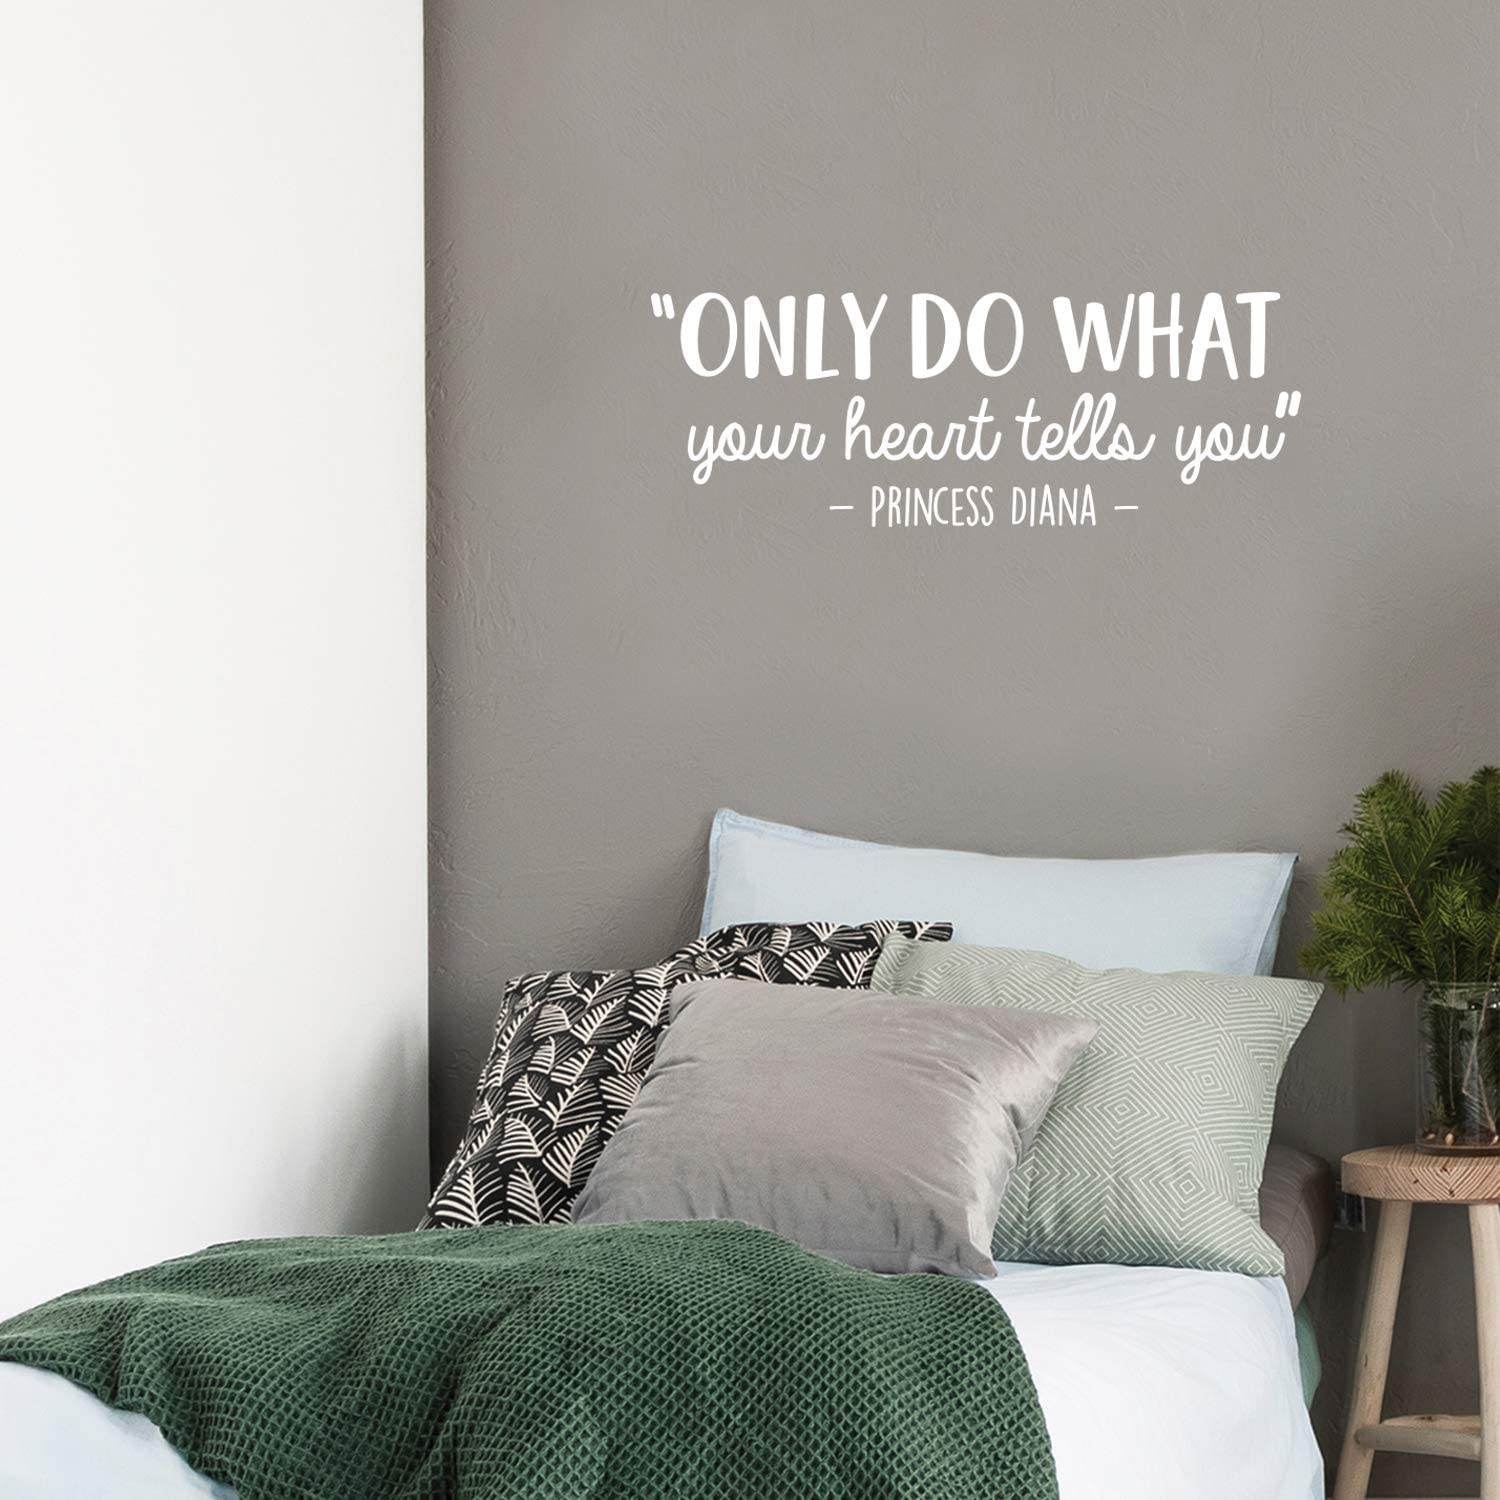 Vinyl Wall Art Decal - Only Do What Your Heart Tells You - 10.5